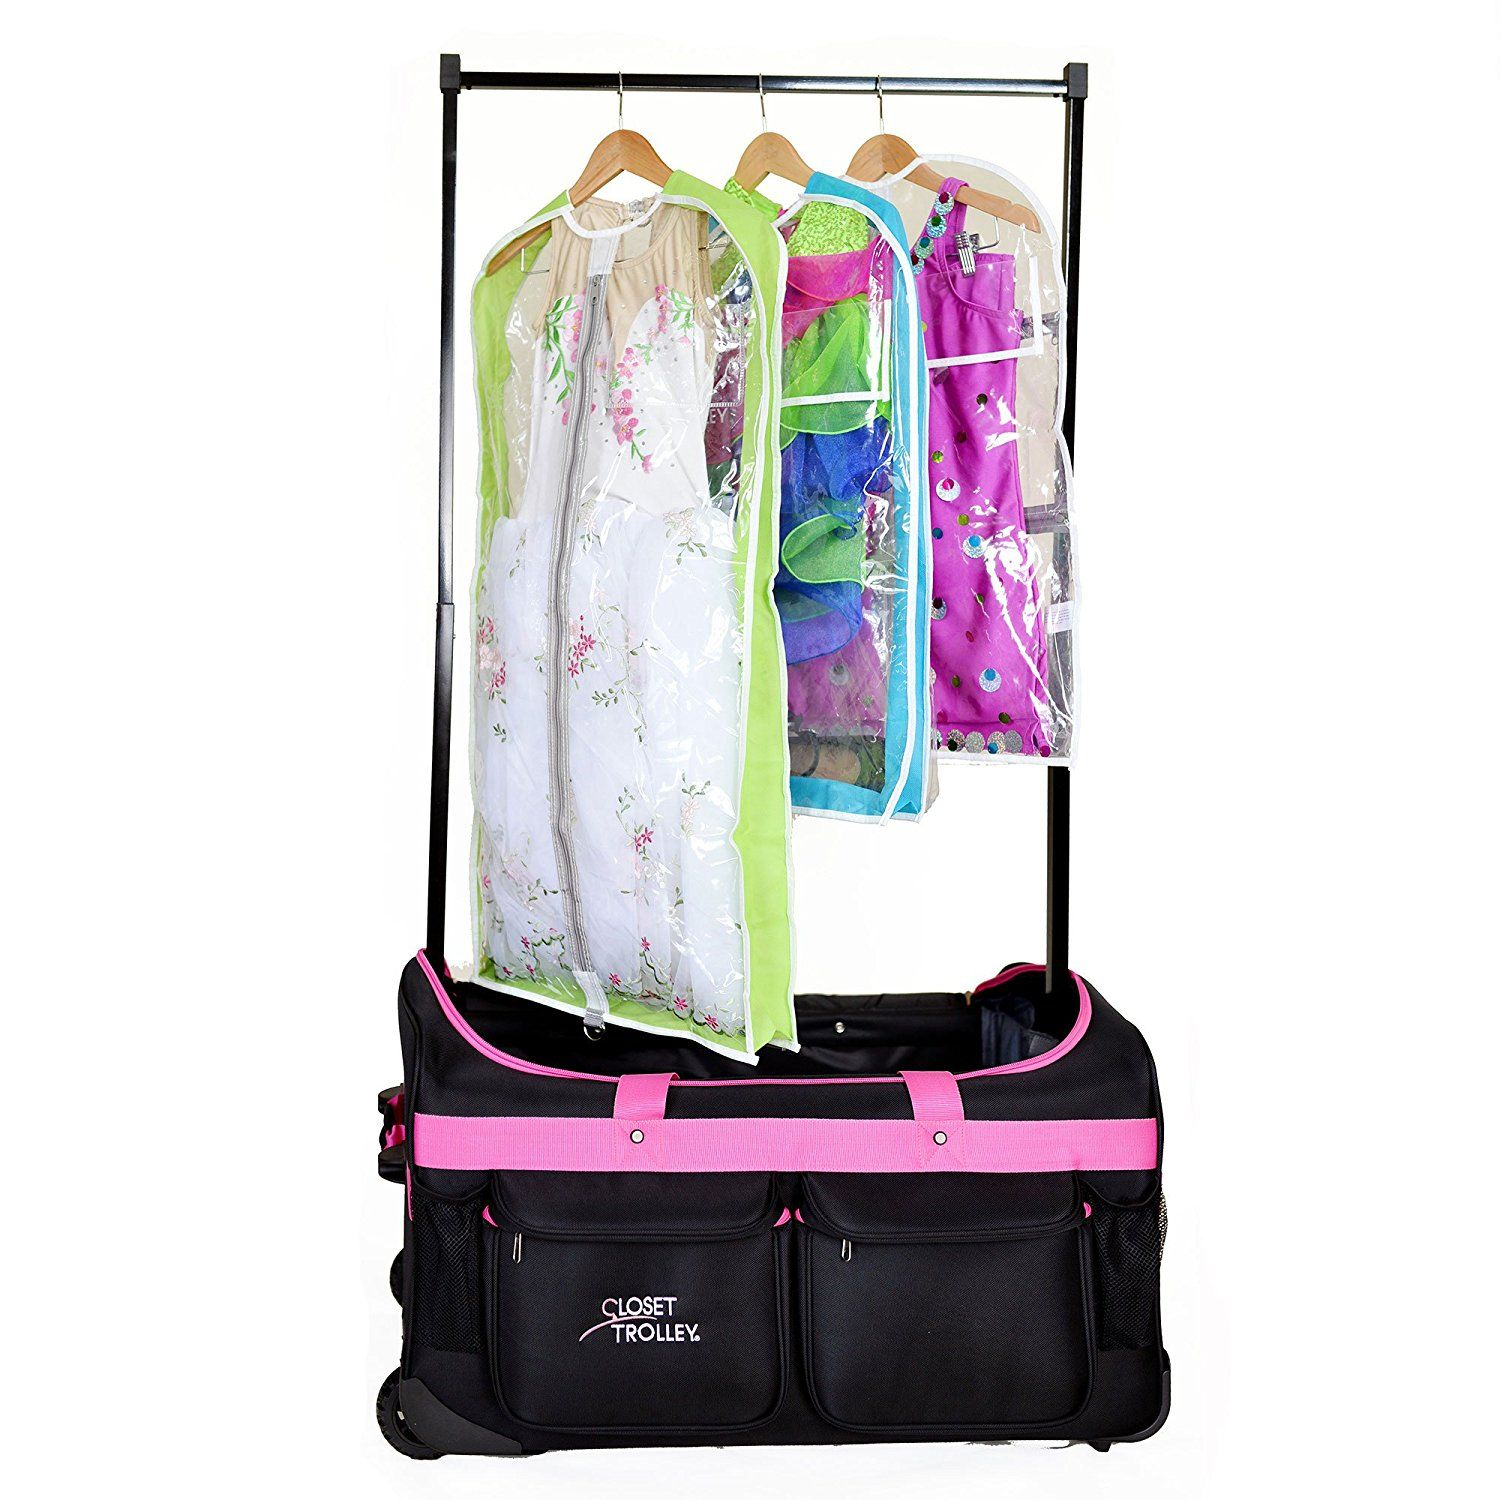 Closet Trolley Dance Bag With Garment Rack Pink Duffel Click Image For More Details